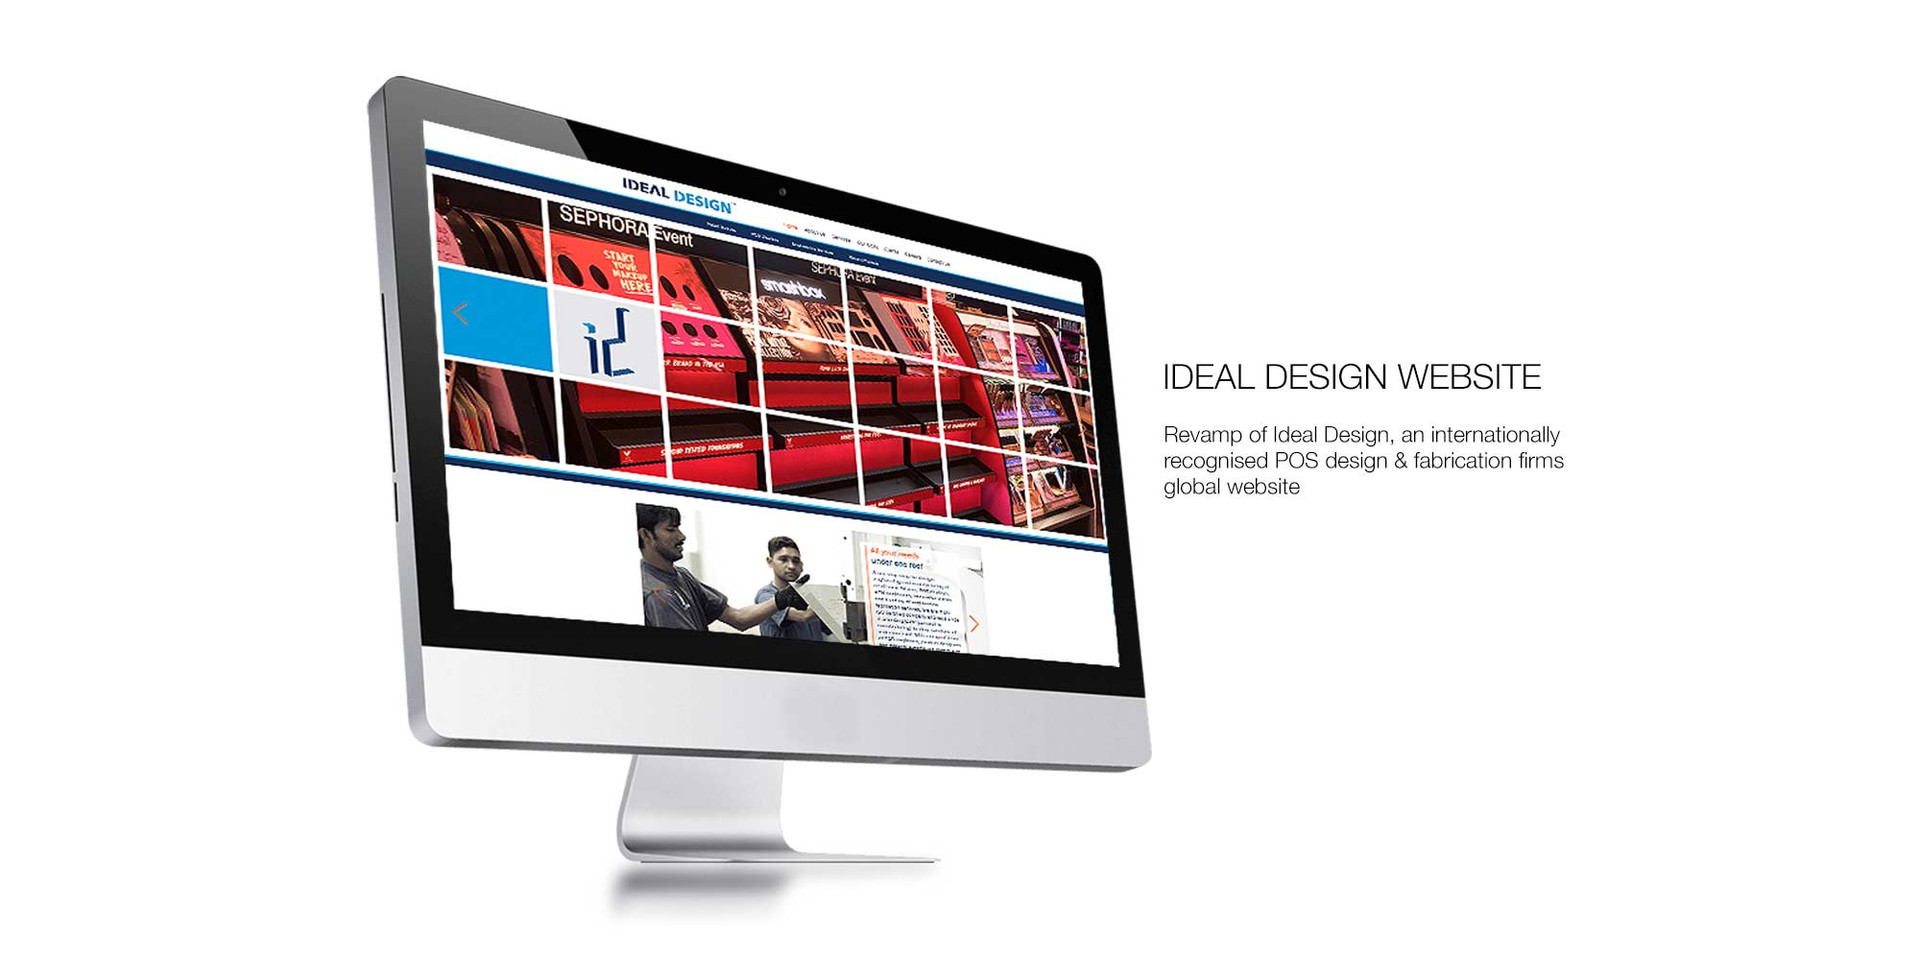 Ideal Design Website